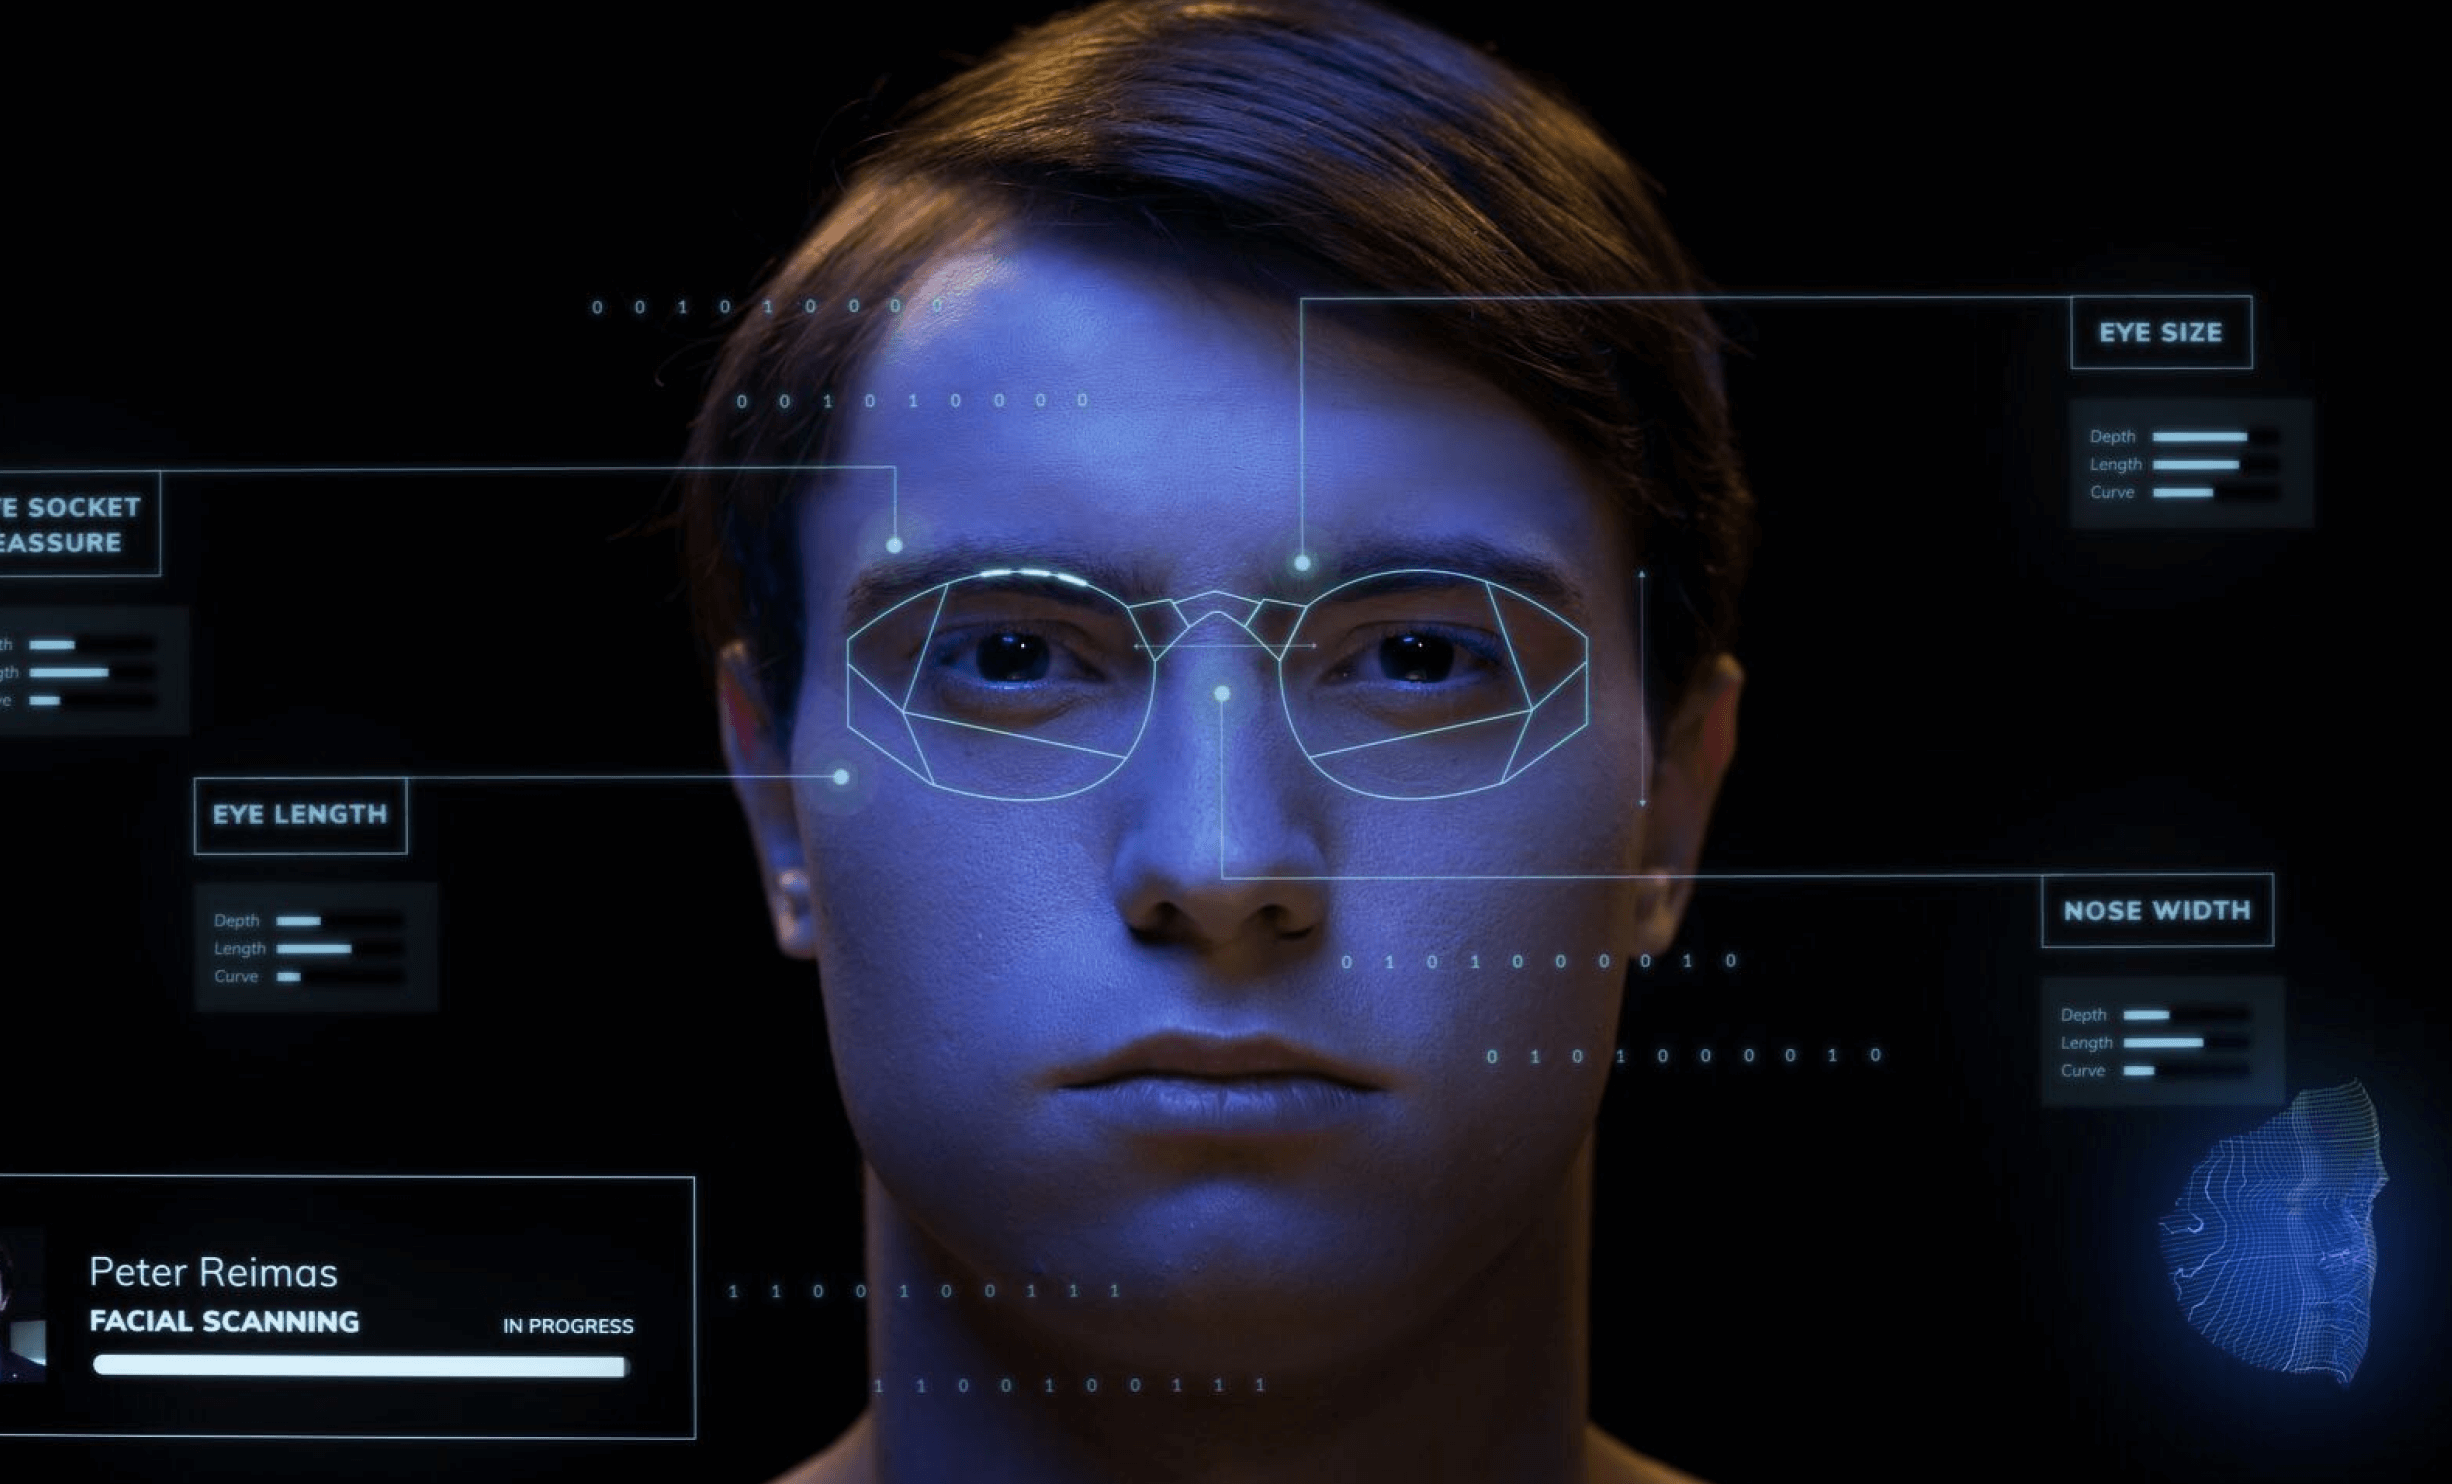 Capturing the swimming goggles that are made to measure